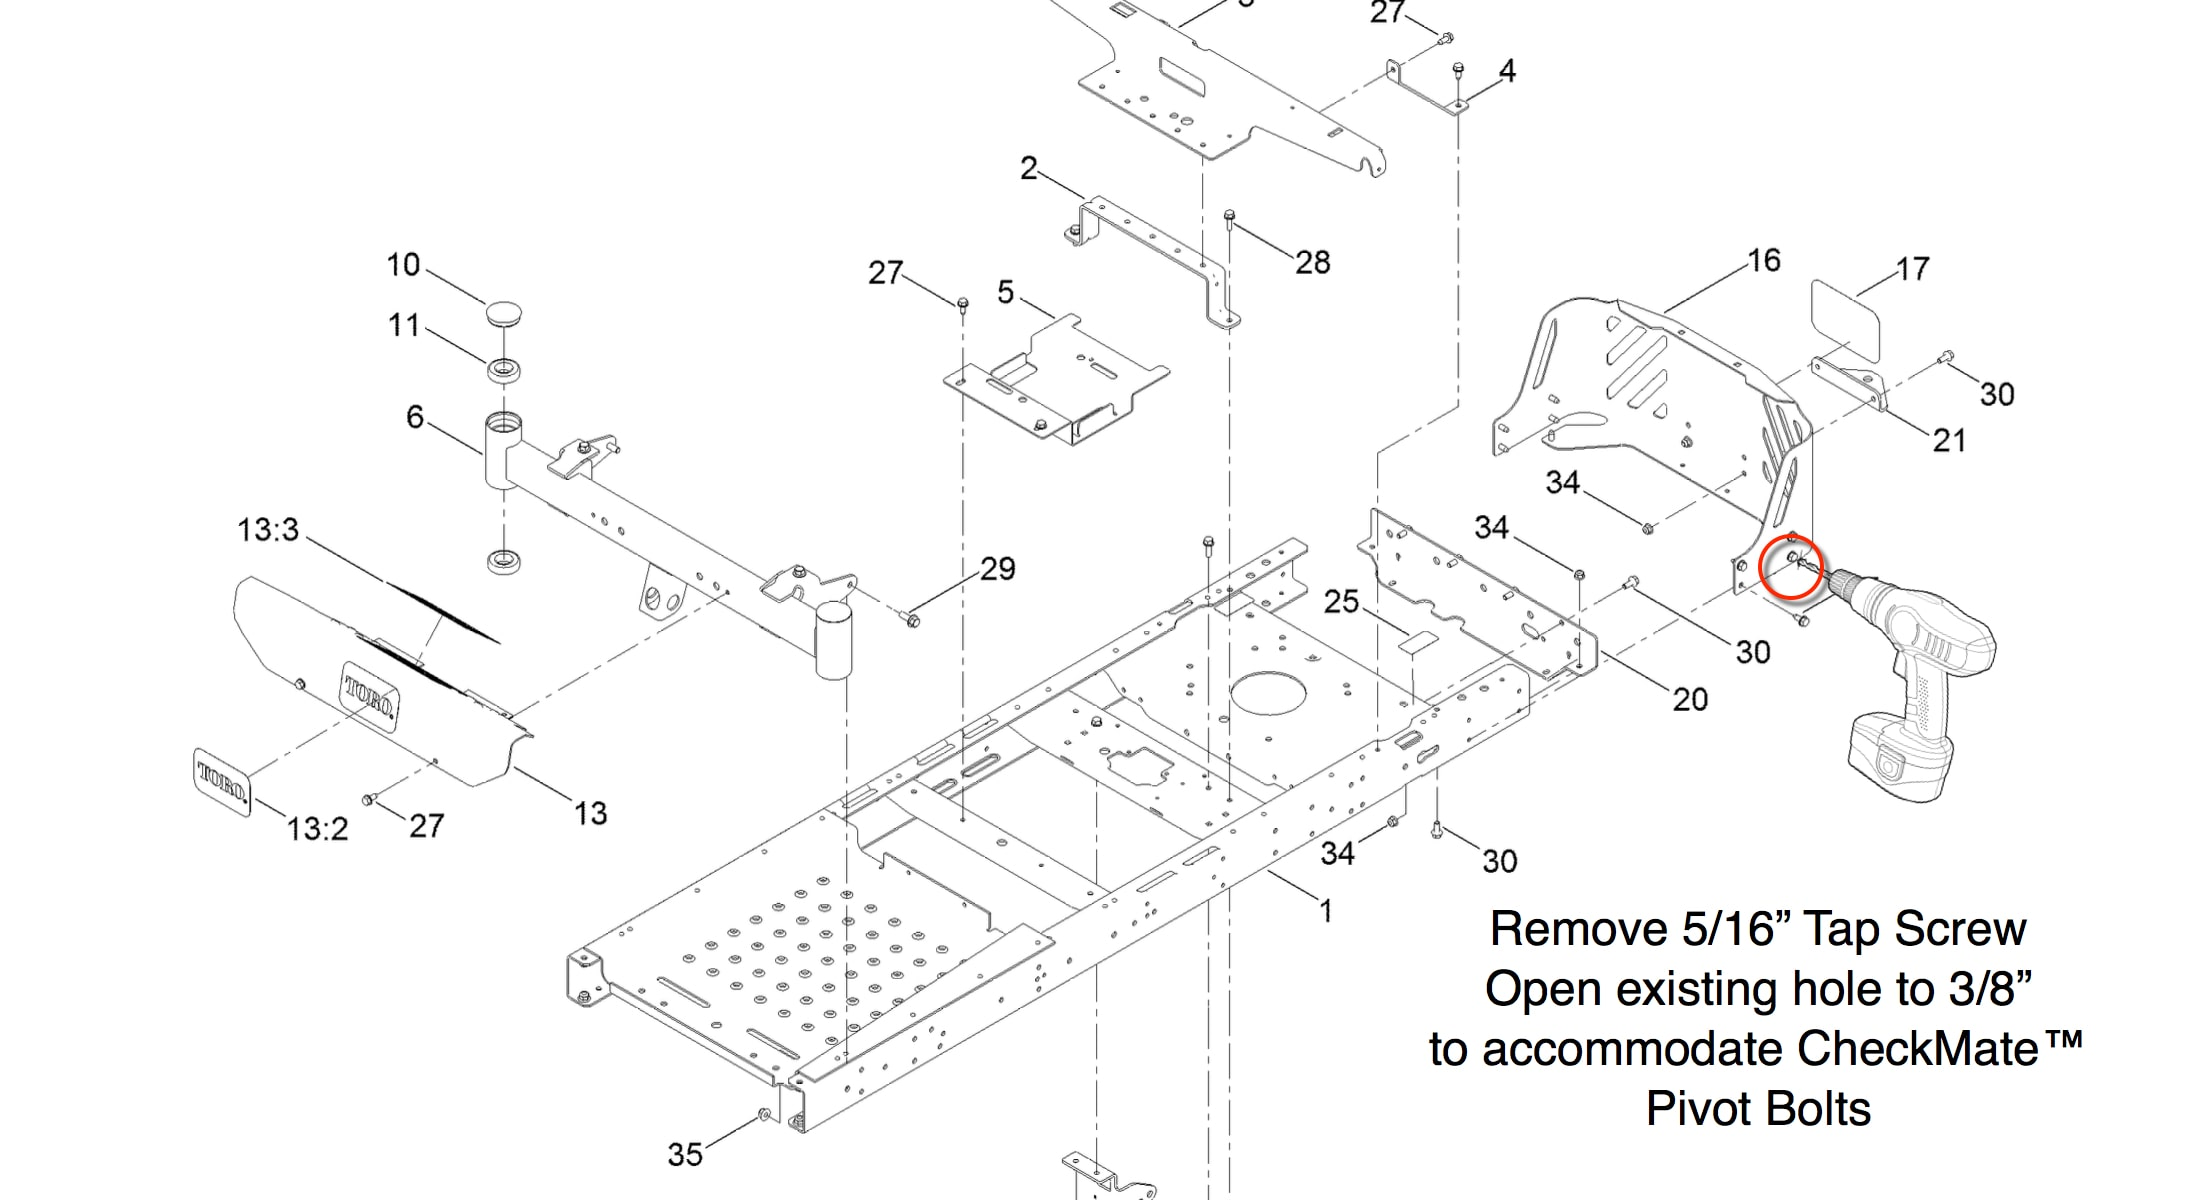 Toro Timecutter Ss4235 Wiring Diagram Pdf Library Installation Schematic Checkmate Lawn Striper For Ss